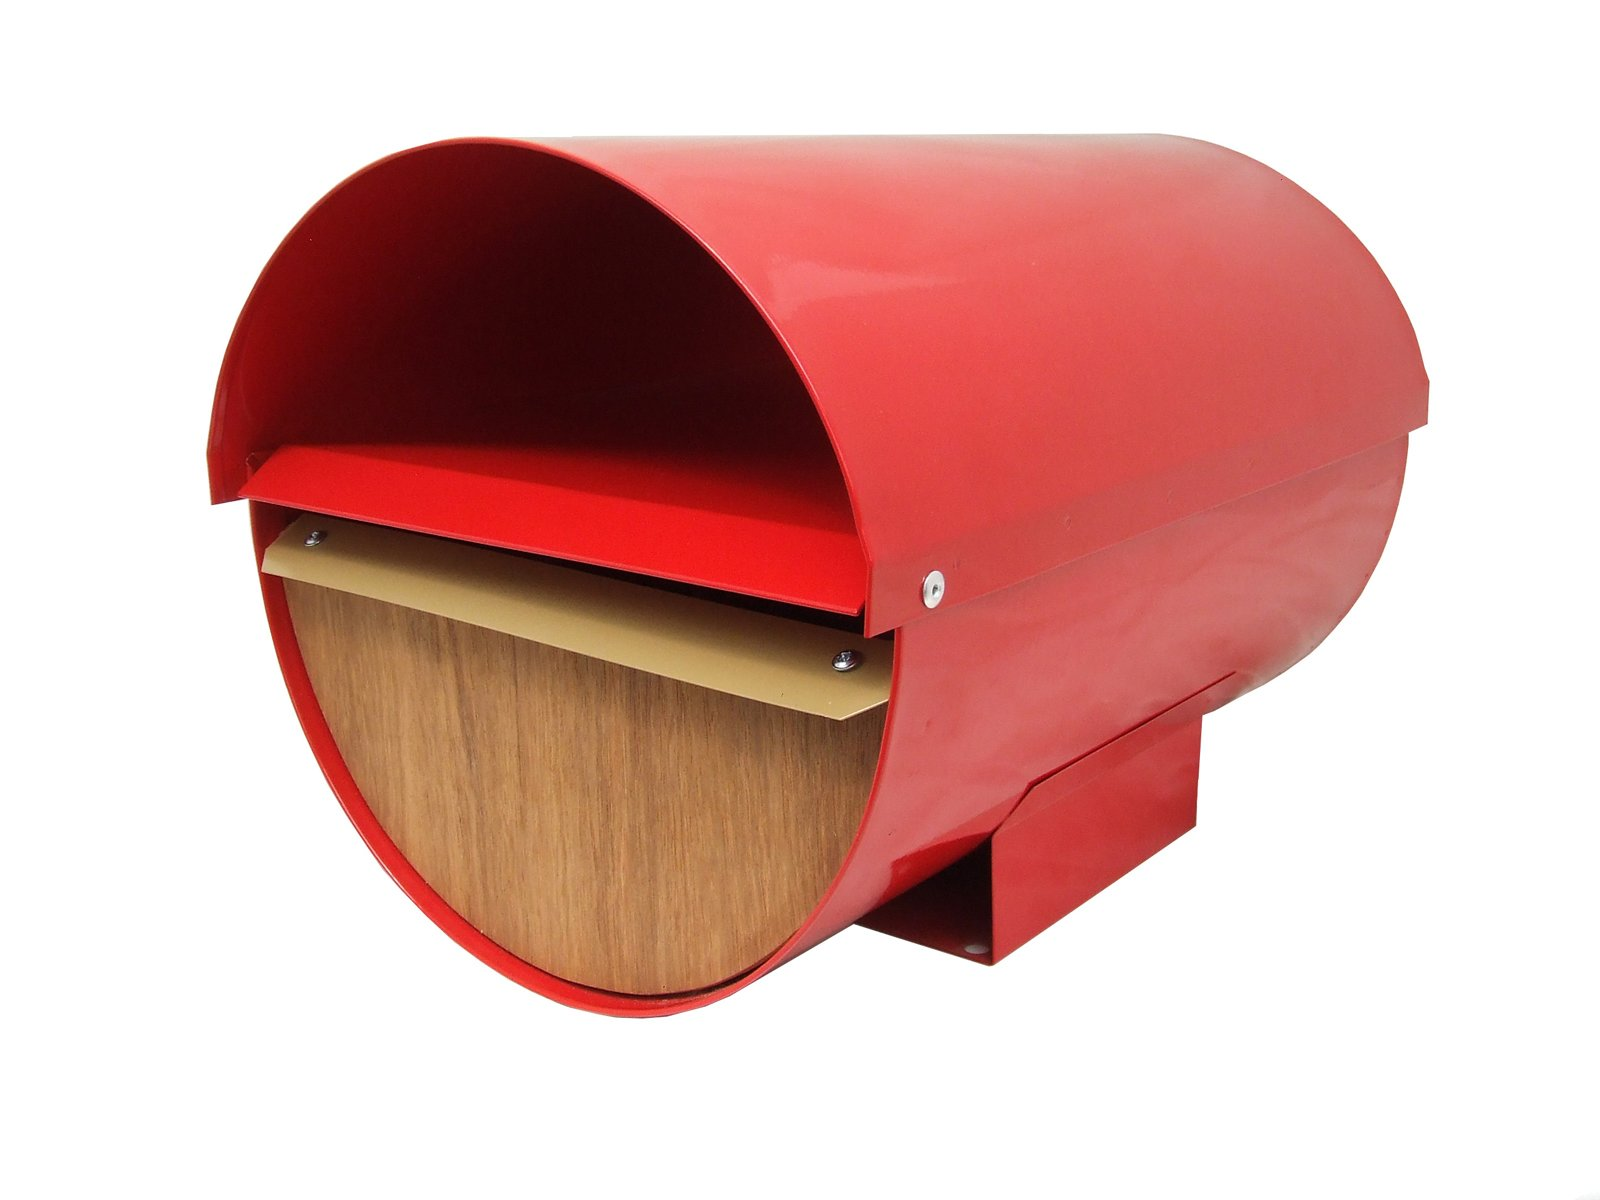 Cadrona in Red from Mailboxes.co, $150-A powder-coated zincalume body and marine plywood front means zero rust and mold from this New Zealand-made mailbox; a locked lower half keeps mail and packaged protected while the open upper half holds newspapers. 8 Best Modern Mailboxes to Buy - Photo 4 of 6